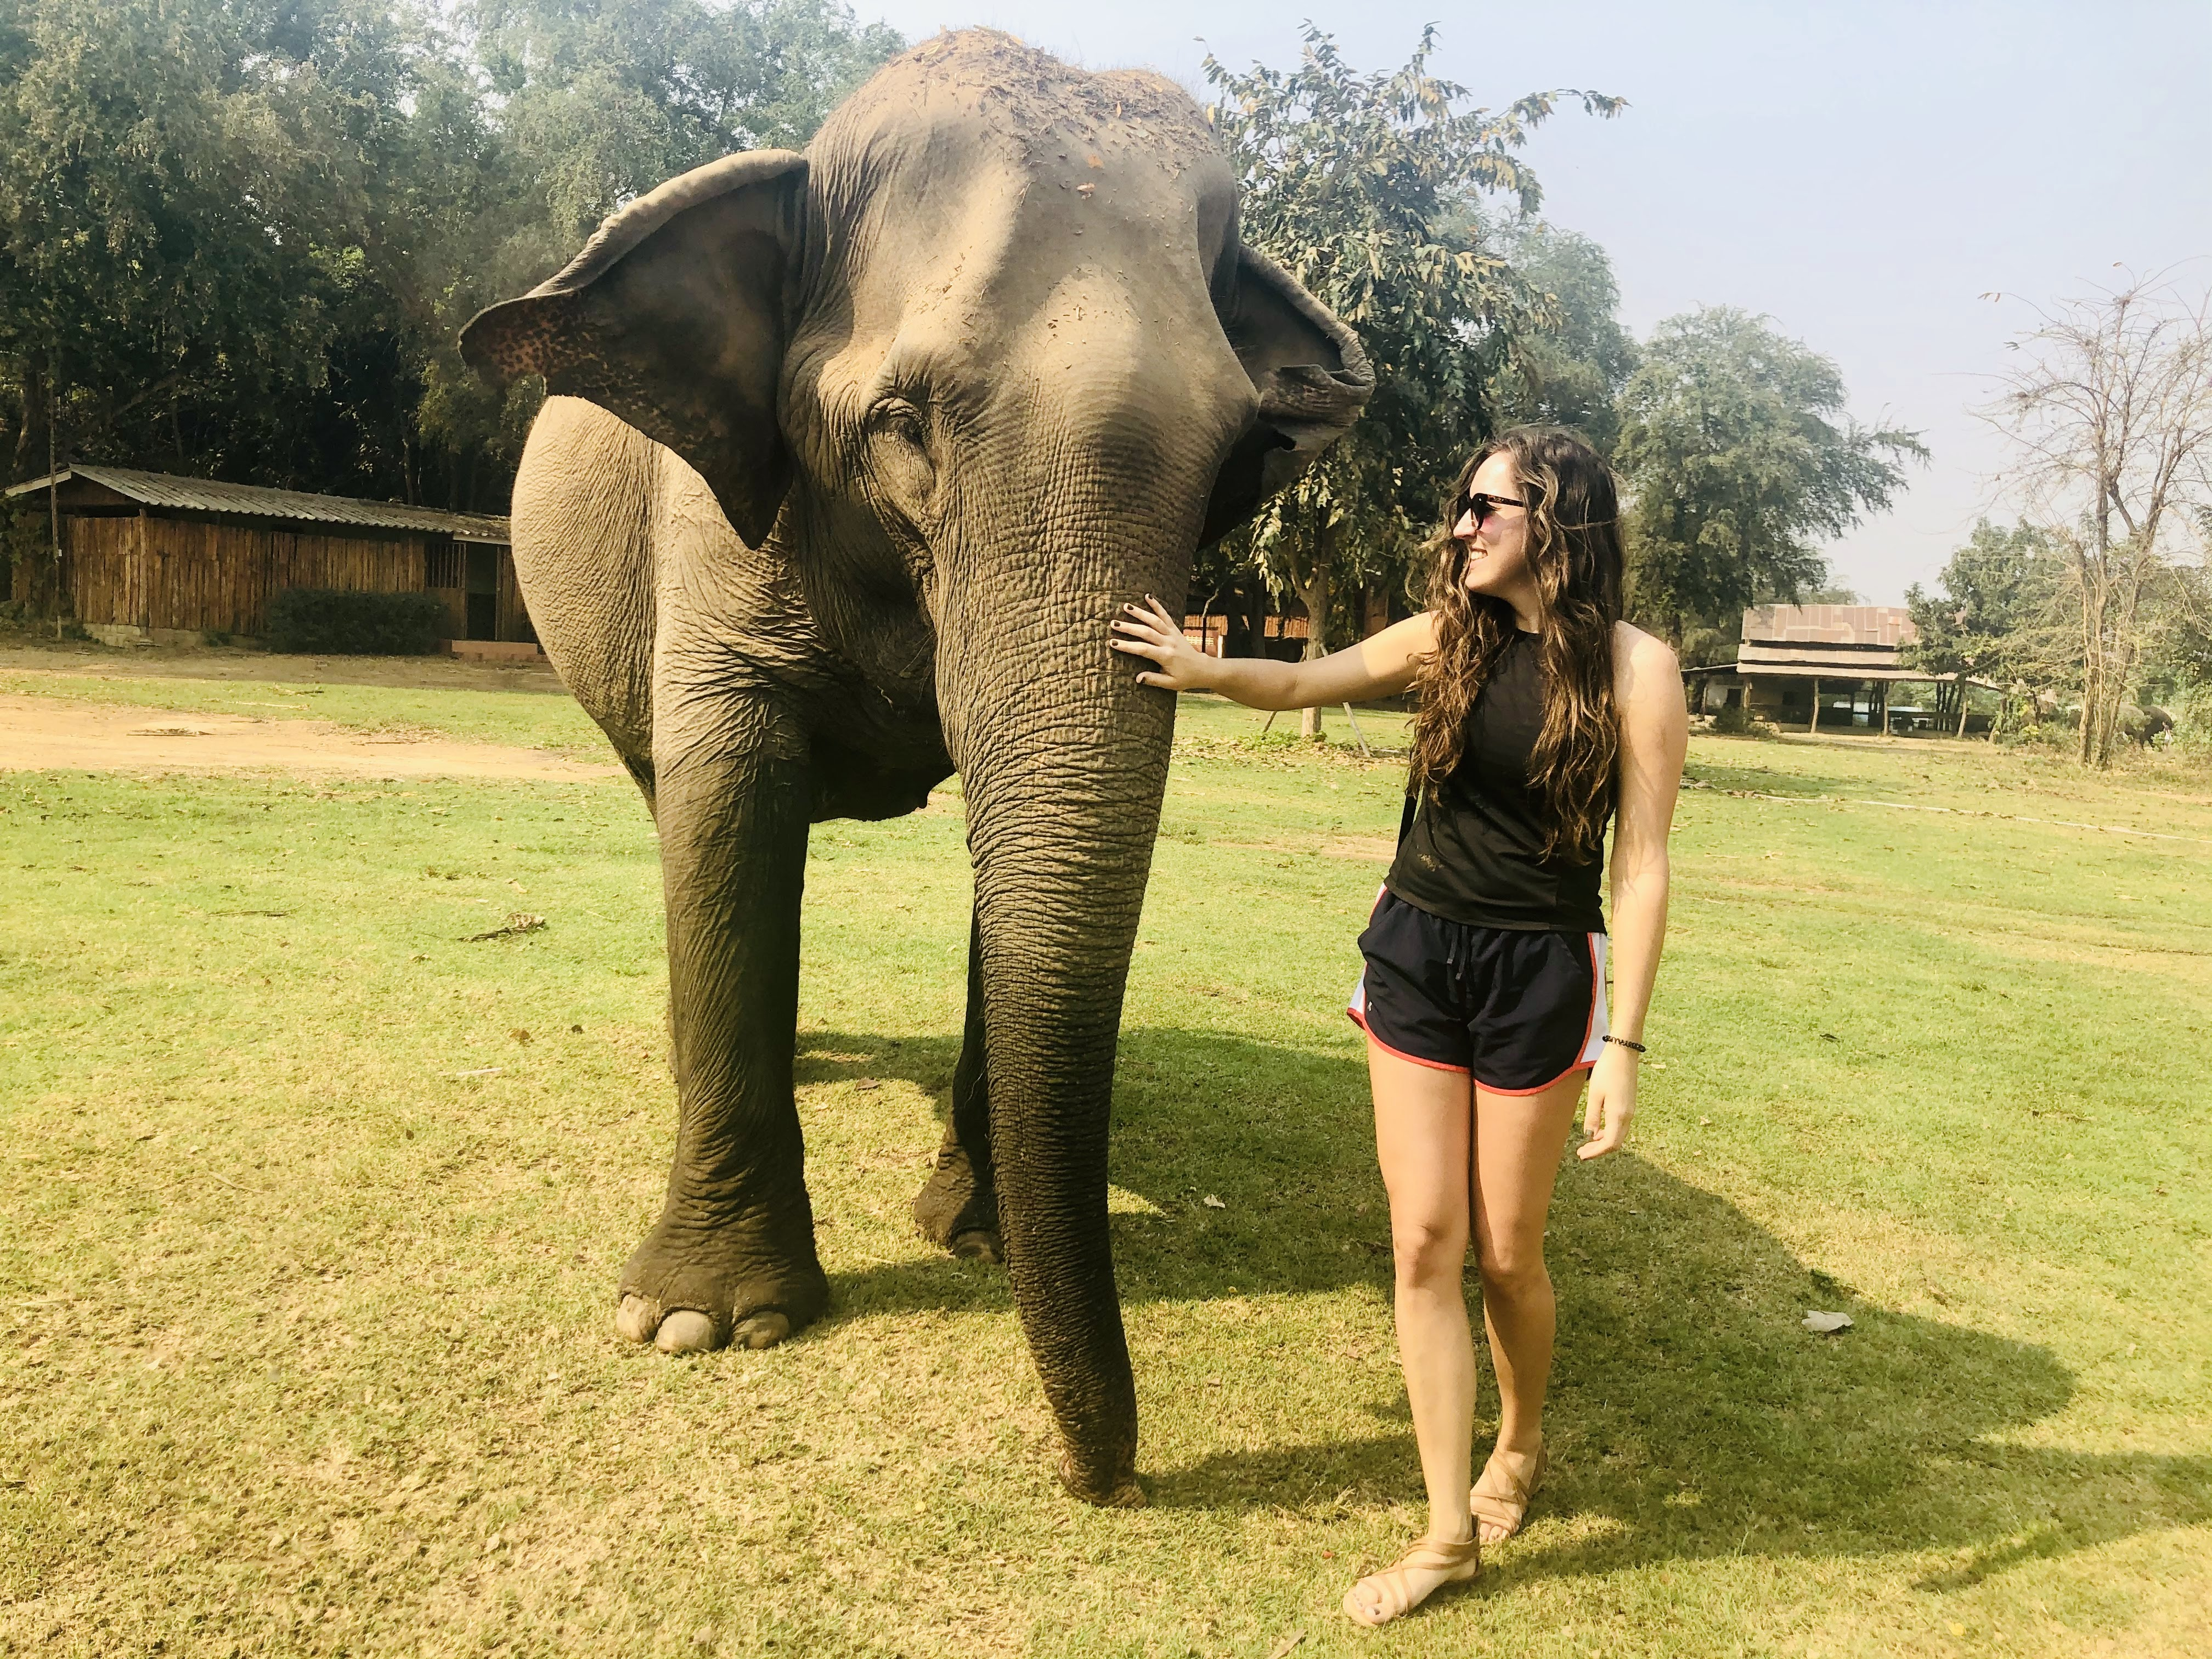 The Savvy International Founder visiting an elephant sanctuary called Elephant World.